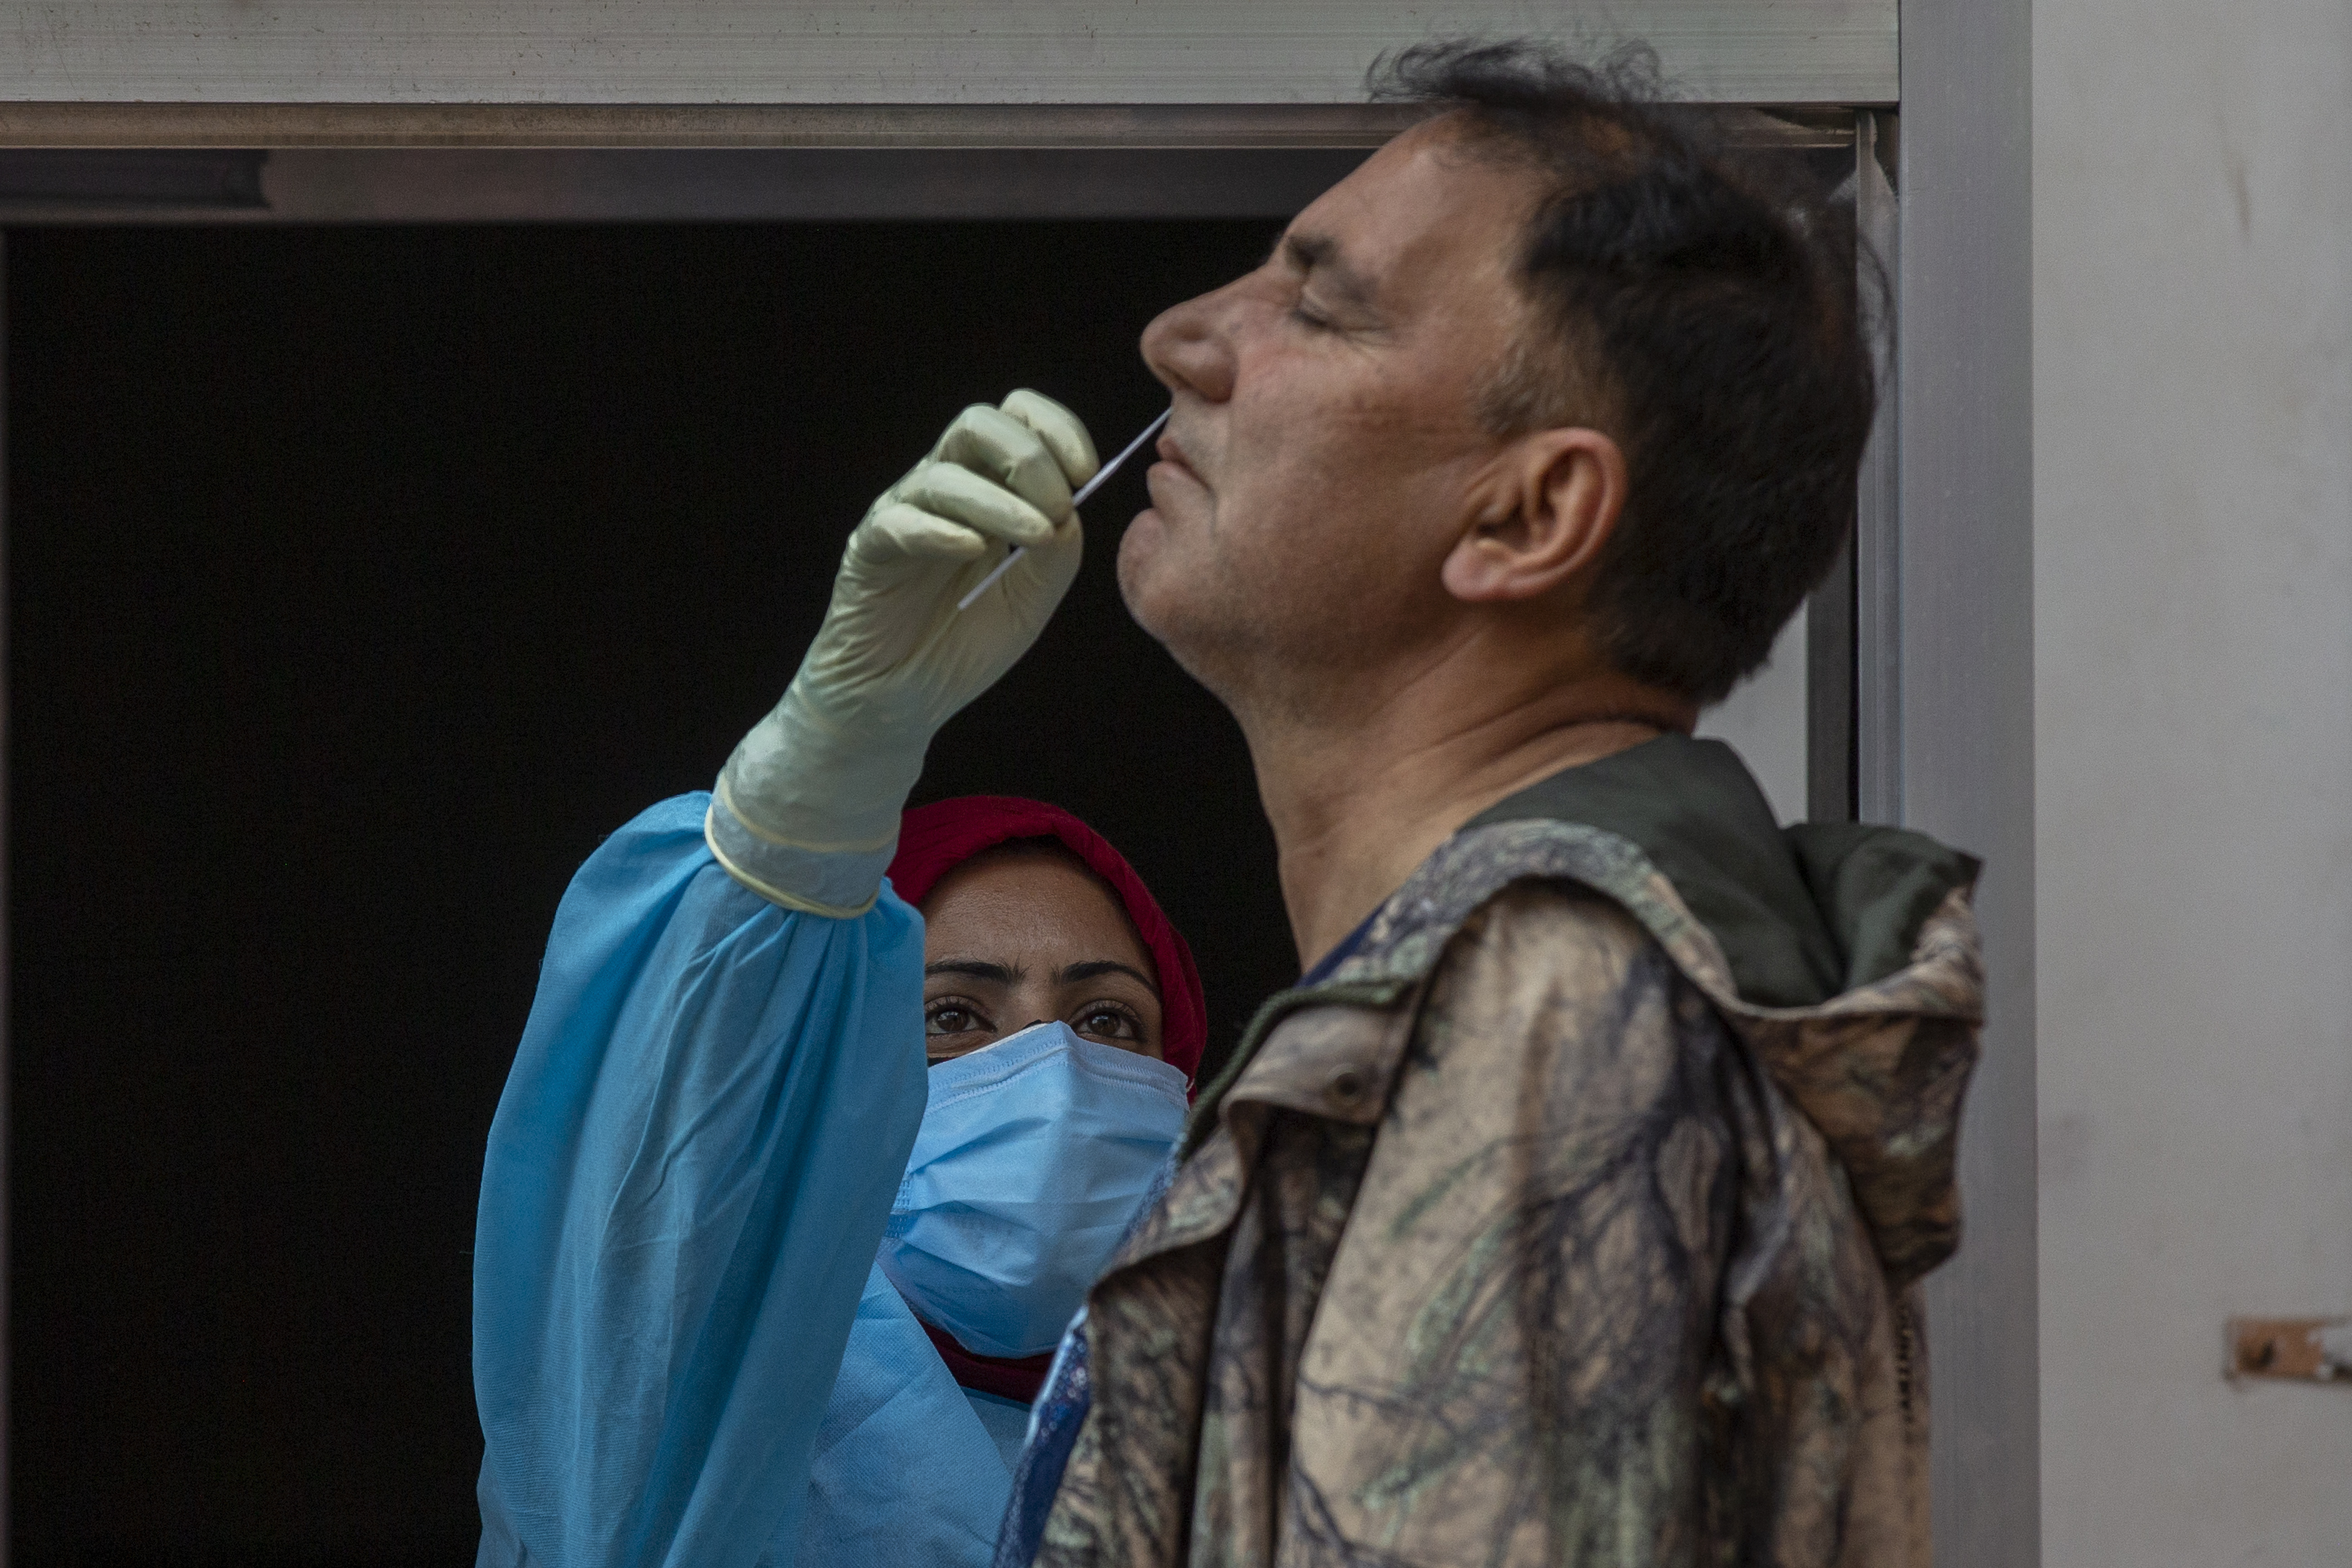 In this May 11, 2021 file photo, a health worker takes a nasal swab sample of a Kashmiri man to test for COVID-19 in Srinagar, Indian controlled Kashmir. A dip in the number of coronavirus cases in Mumbai is offering a glimmer of hope for India, which is suffering through a surge of infections.